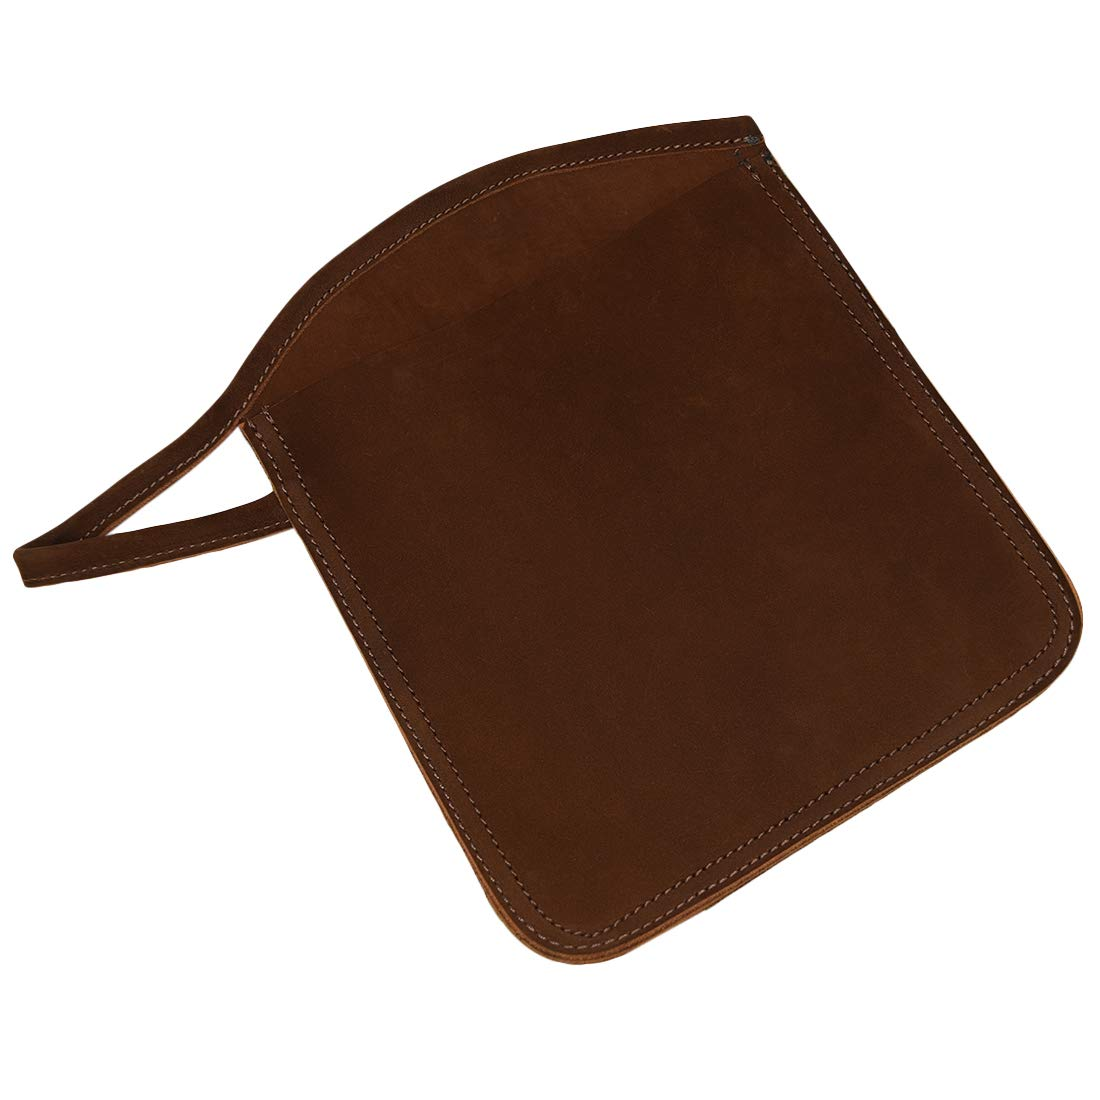 Hide & Drink, Rustic Leather Oven Mitt Handle Hanger, Home & Kitchen Essentials Handmade, Includes 101 Year Warranty :: Swayze Suede